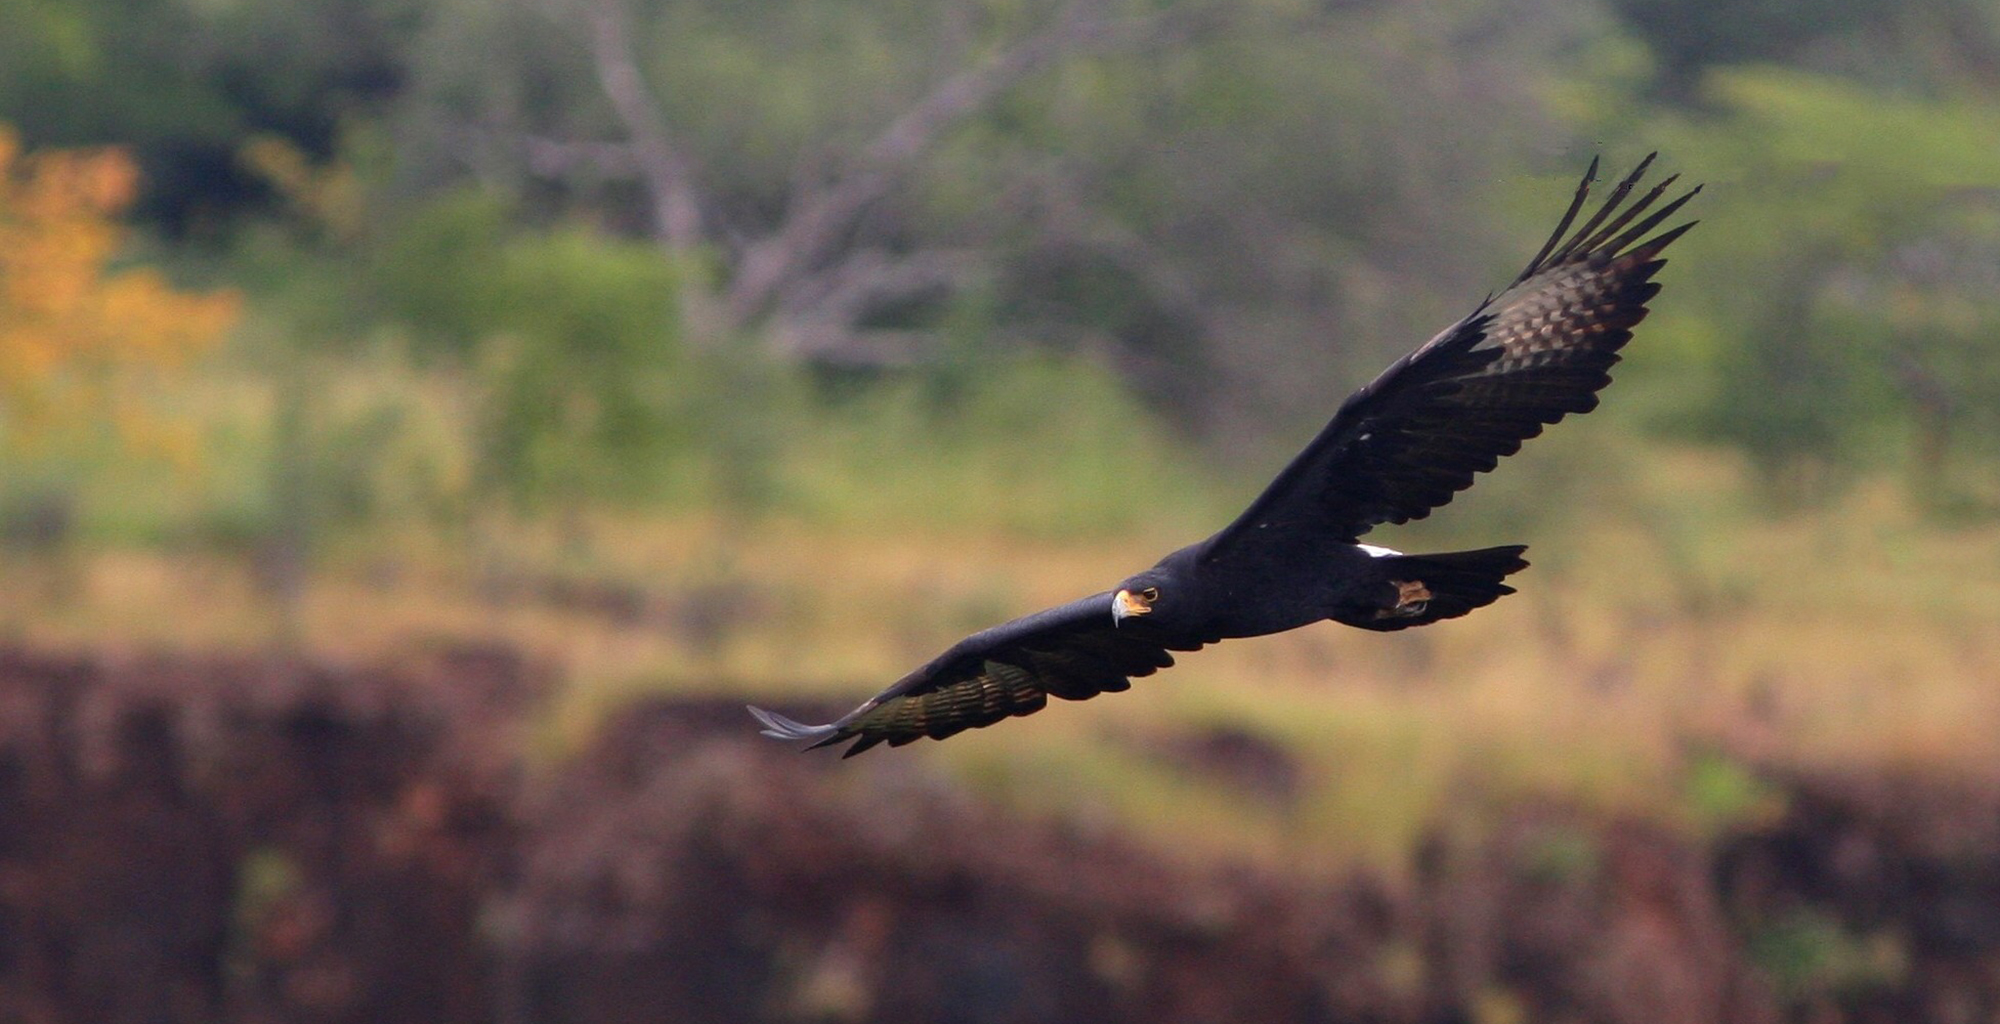 Zambia-River-Club-Birdlife-Eagle